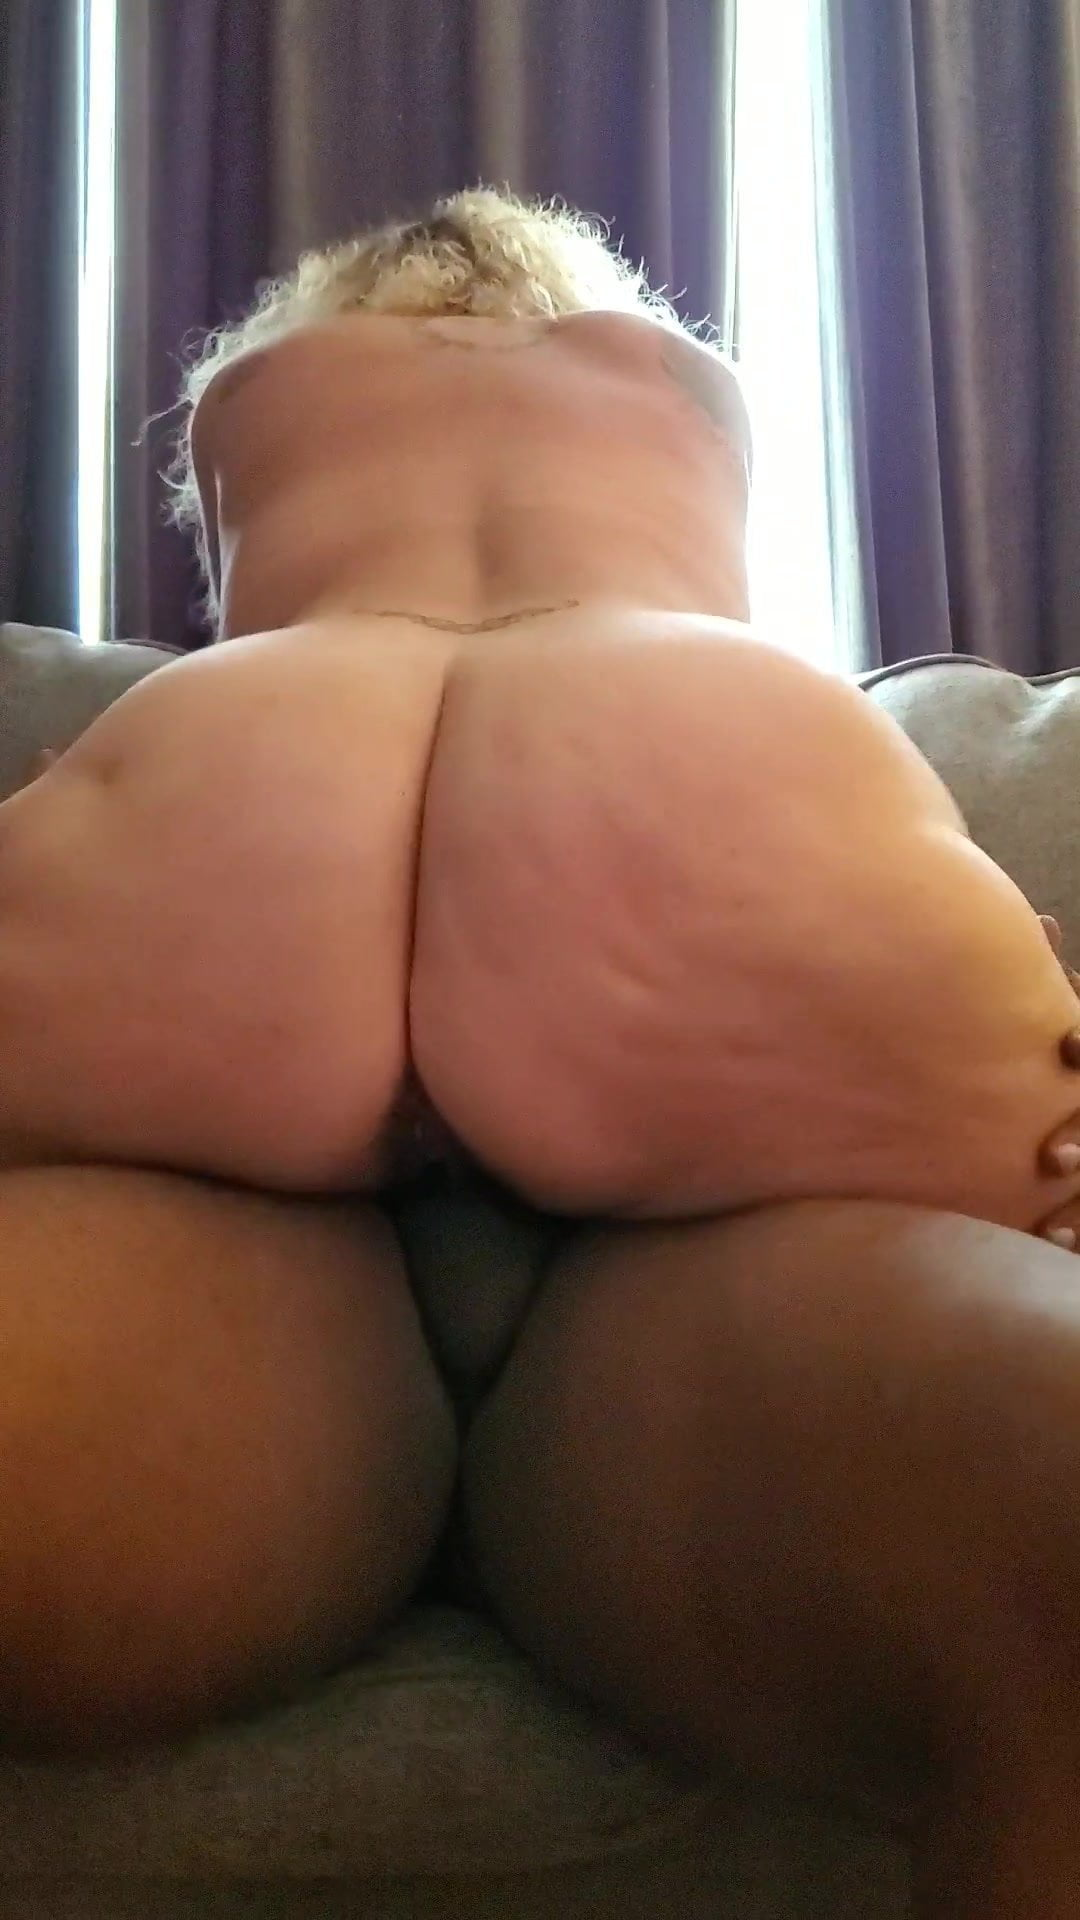 Big Ass Riding Bathroom